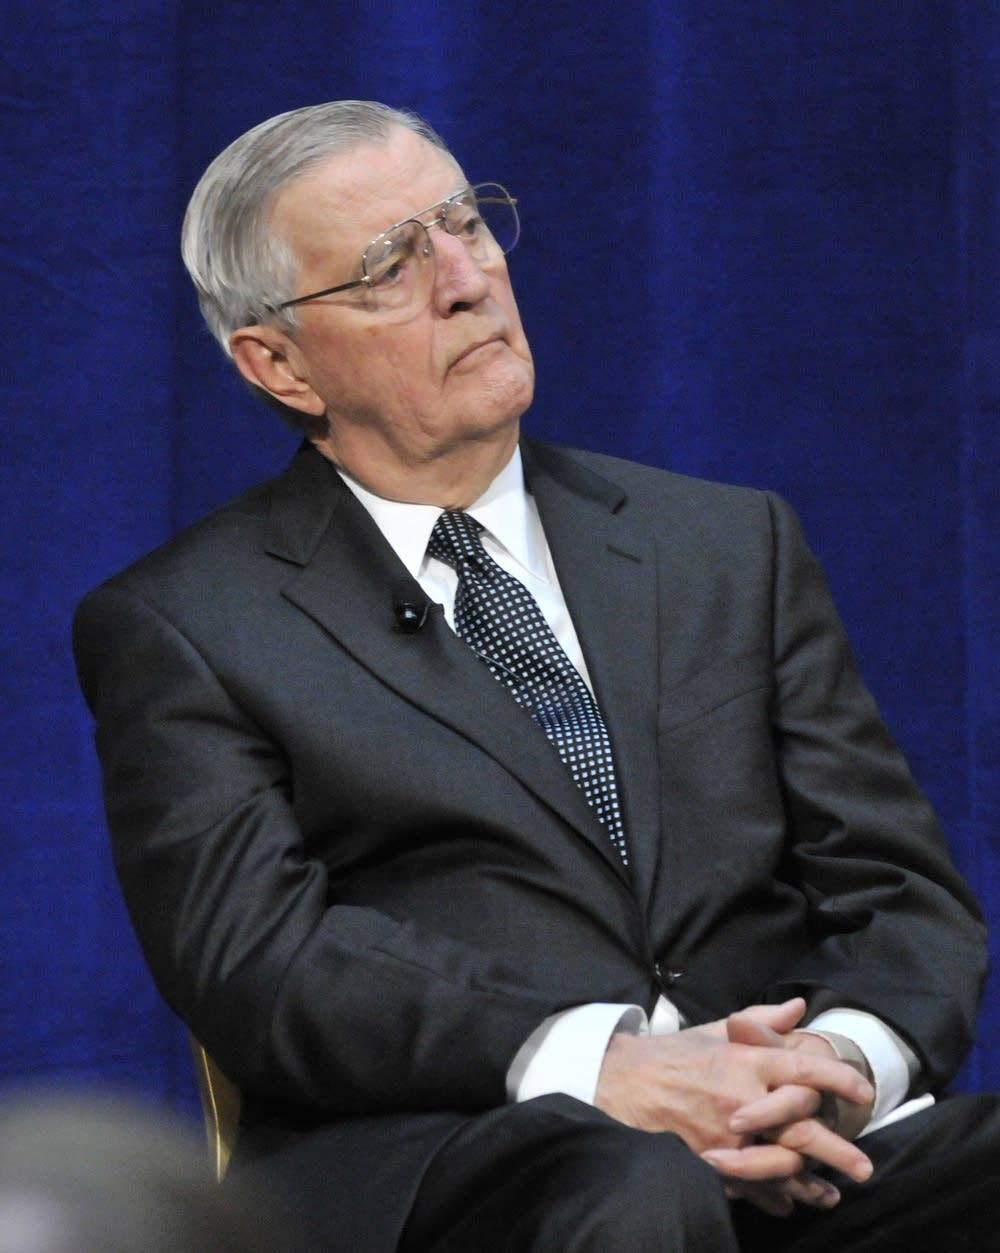 Former Vice President Walter Mondale in a 2011 fil